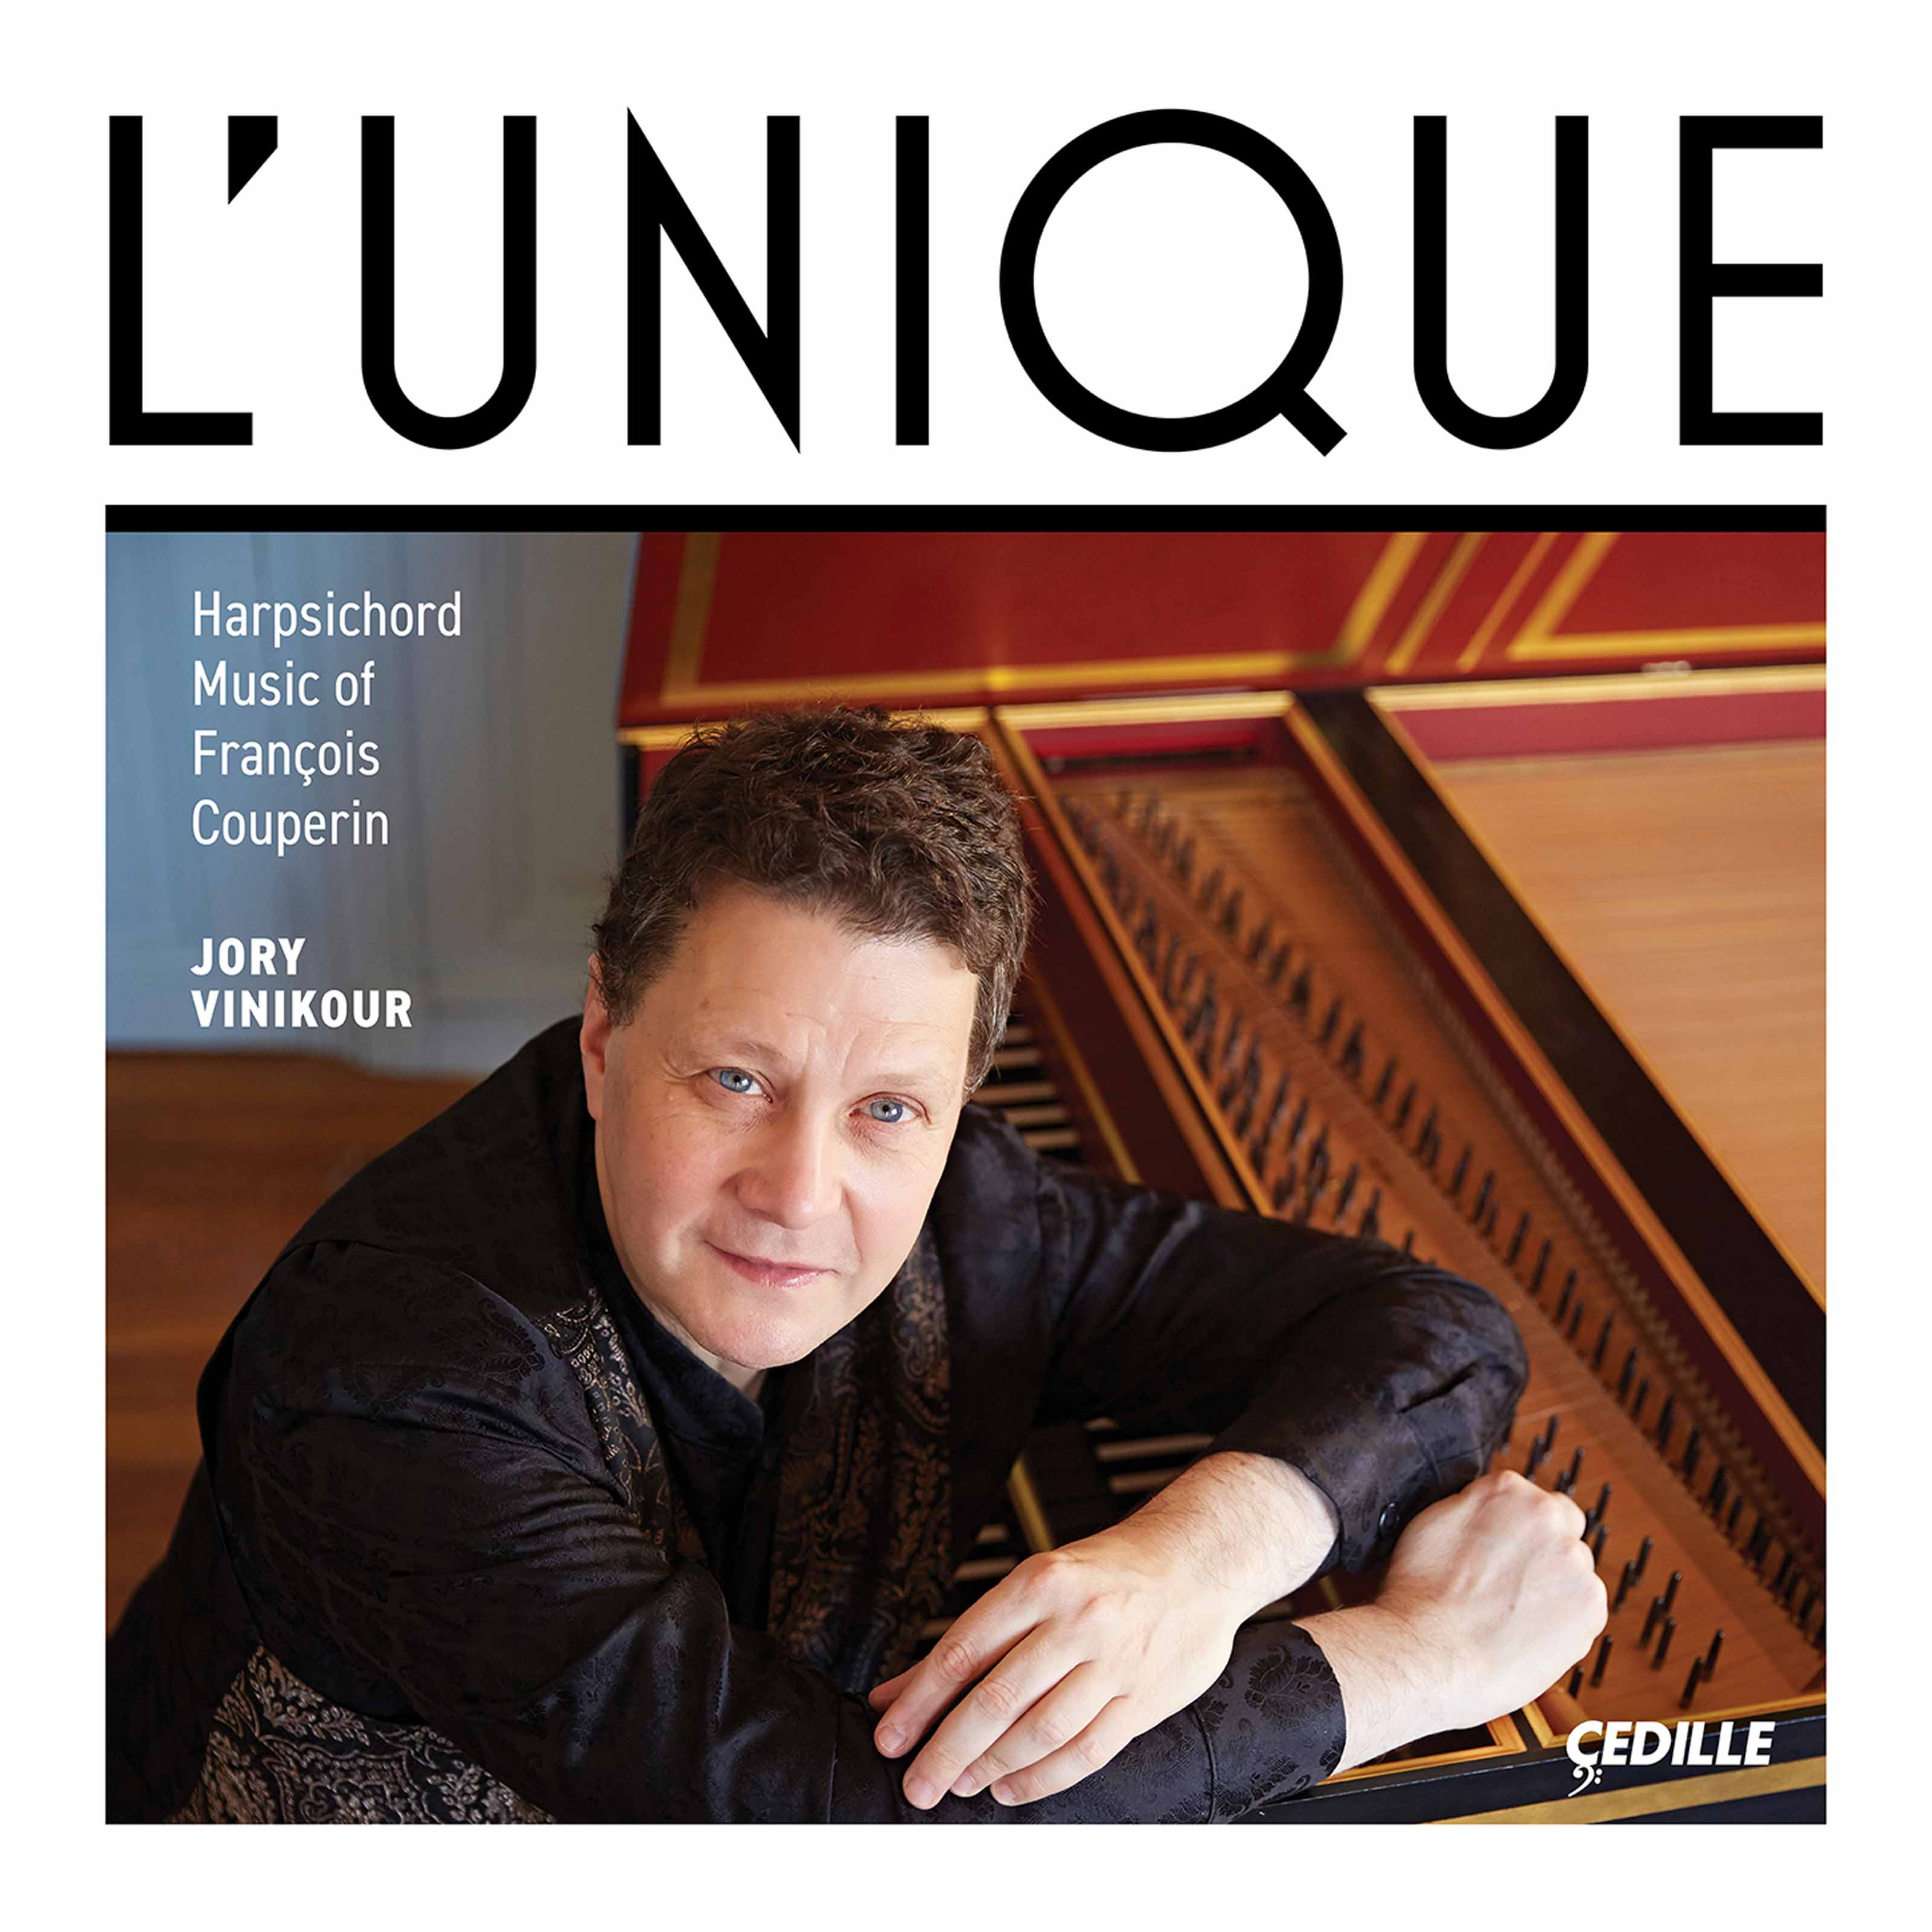 L'UNIQUE - Harpsichord Music of François Couperin